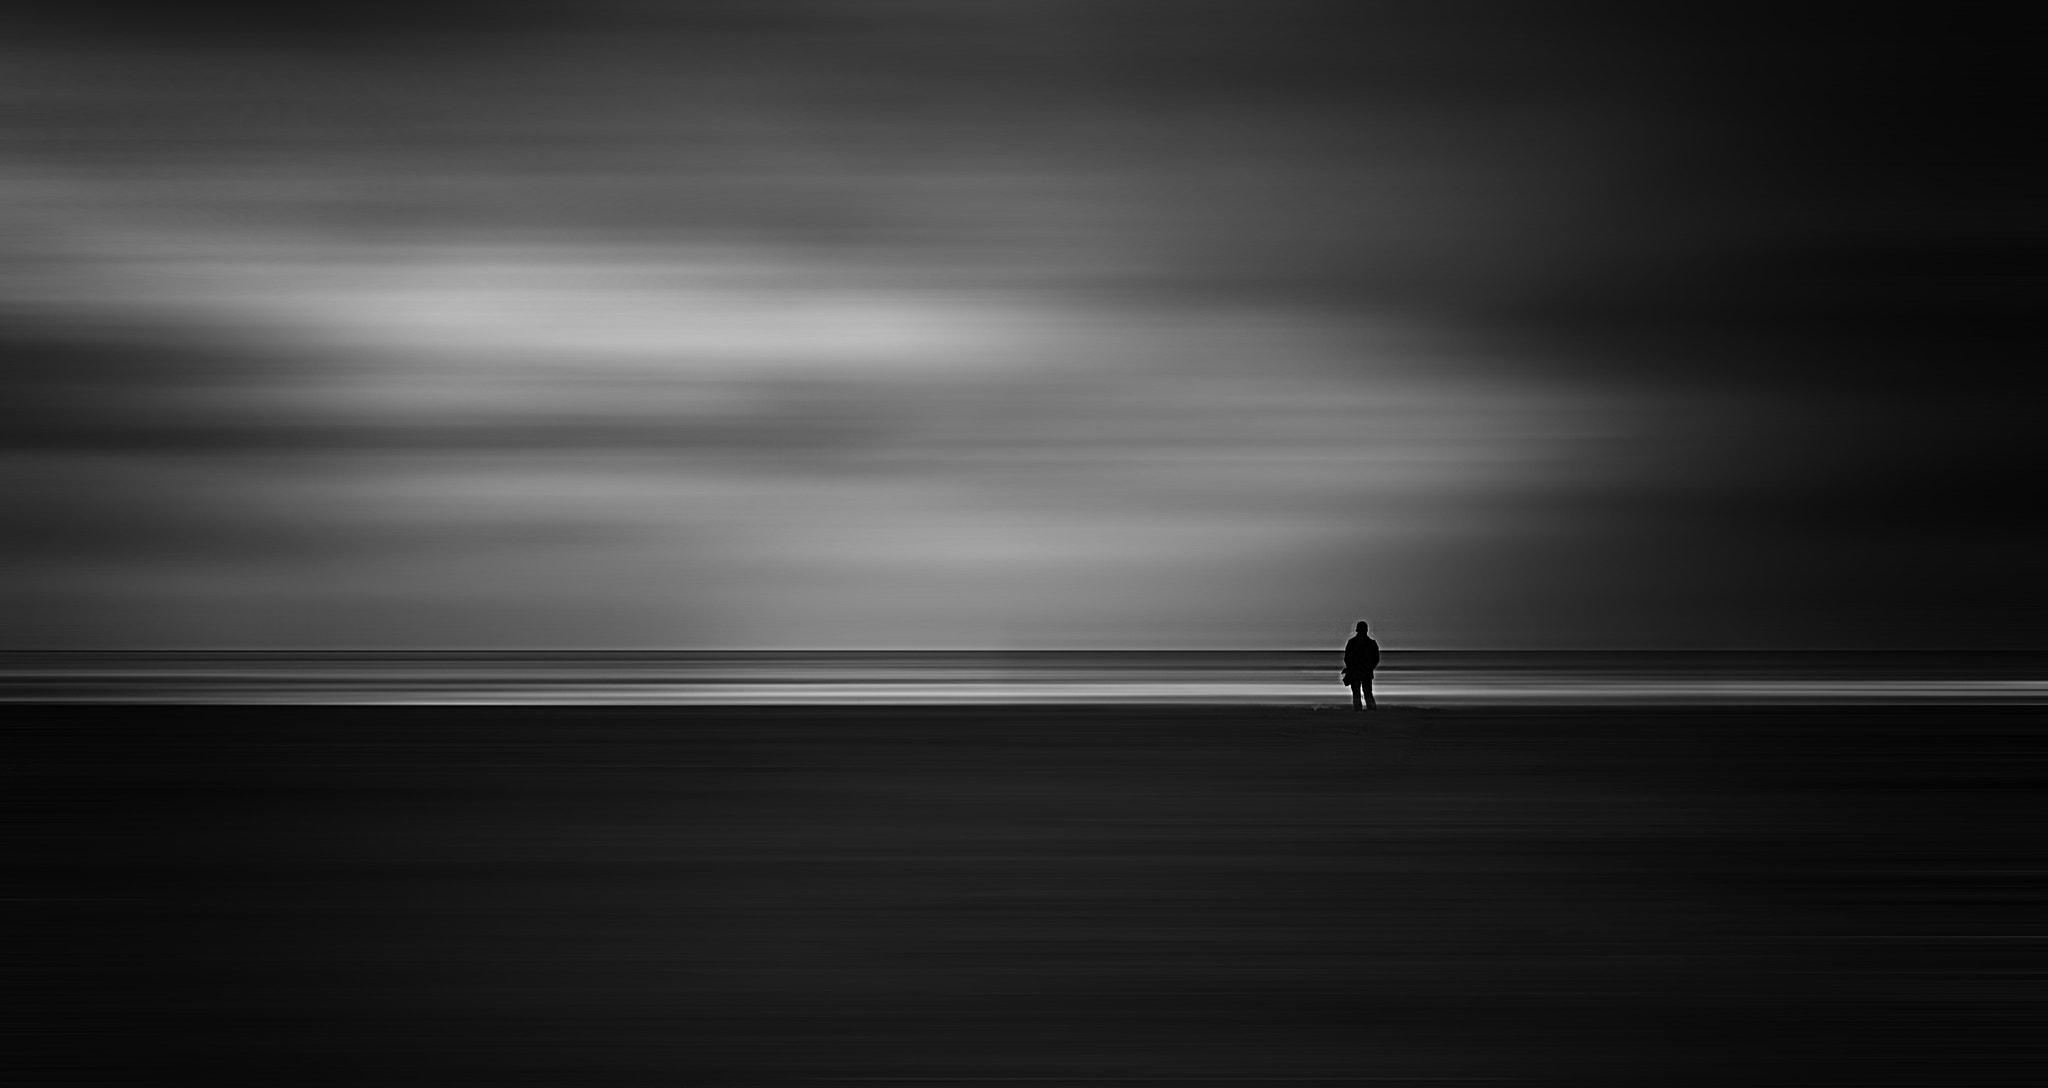 Photograph Alone by Antonio  longobardi on 500px